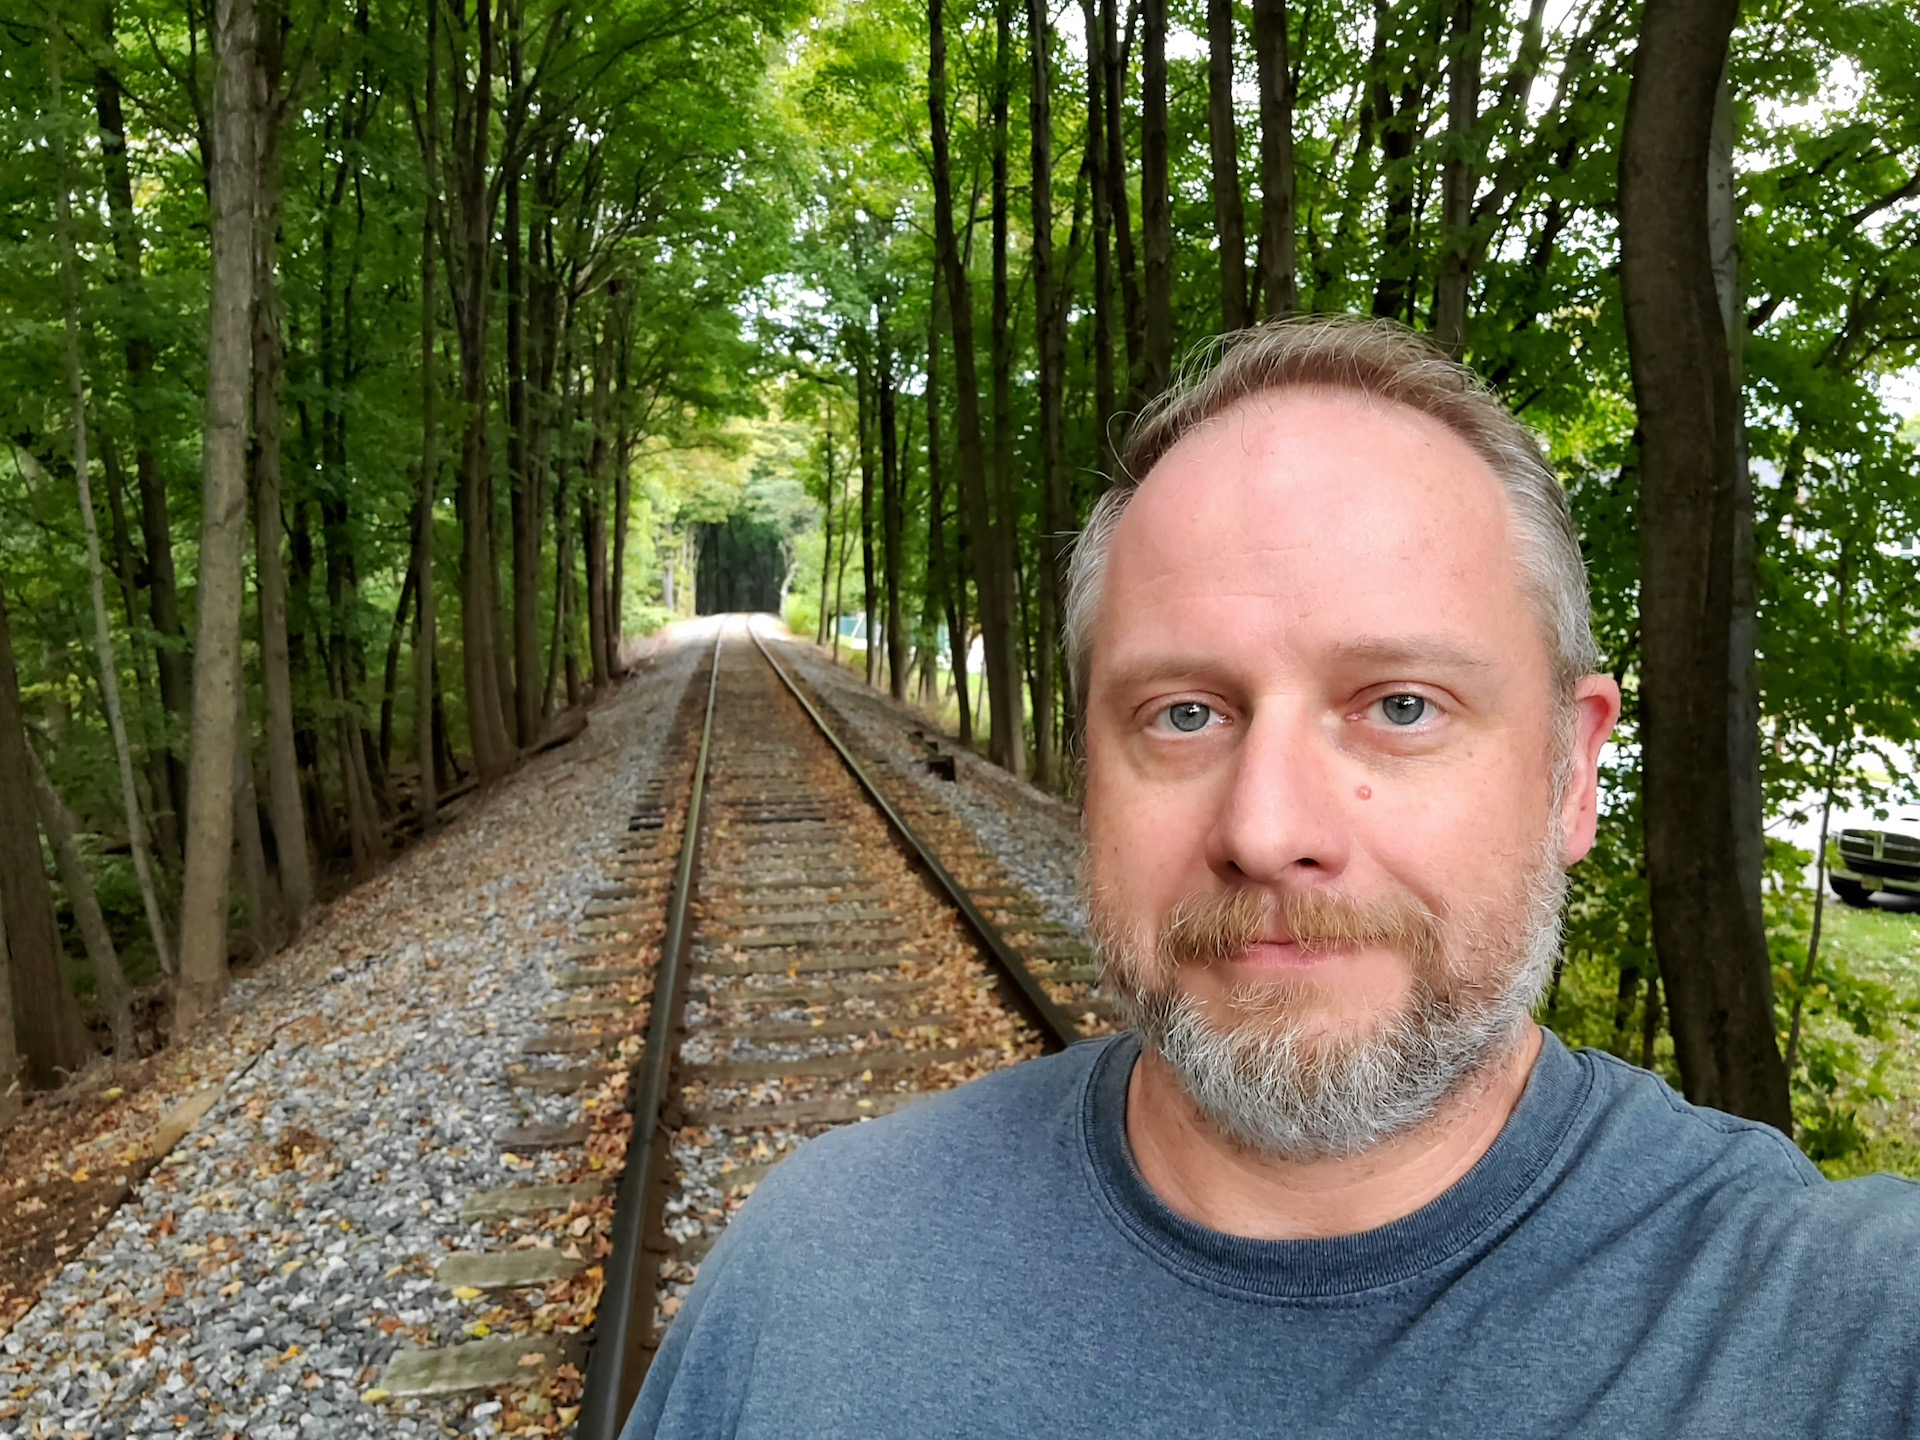 Samsung Galaxy Fold review camera sample wide track selfie